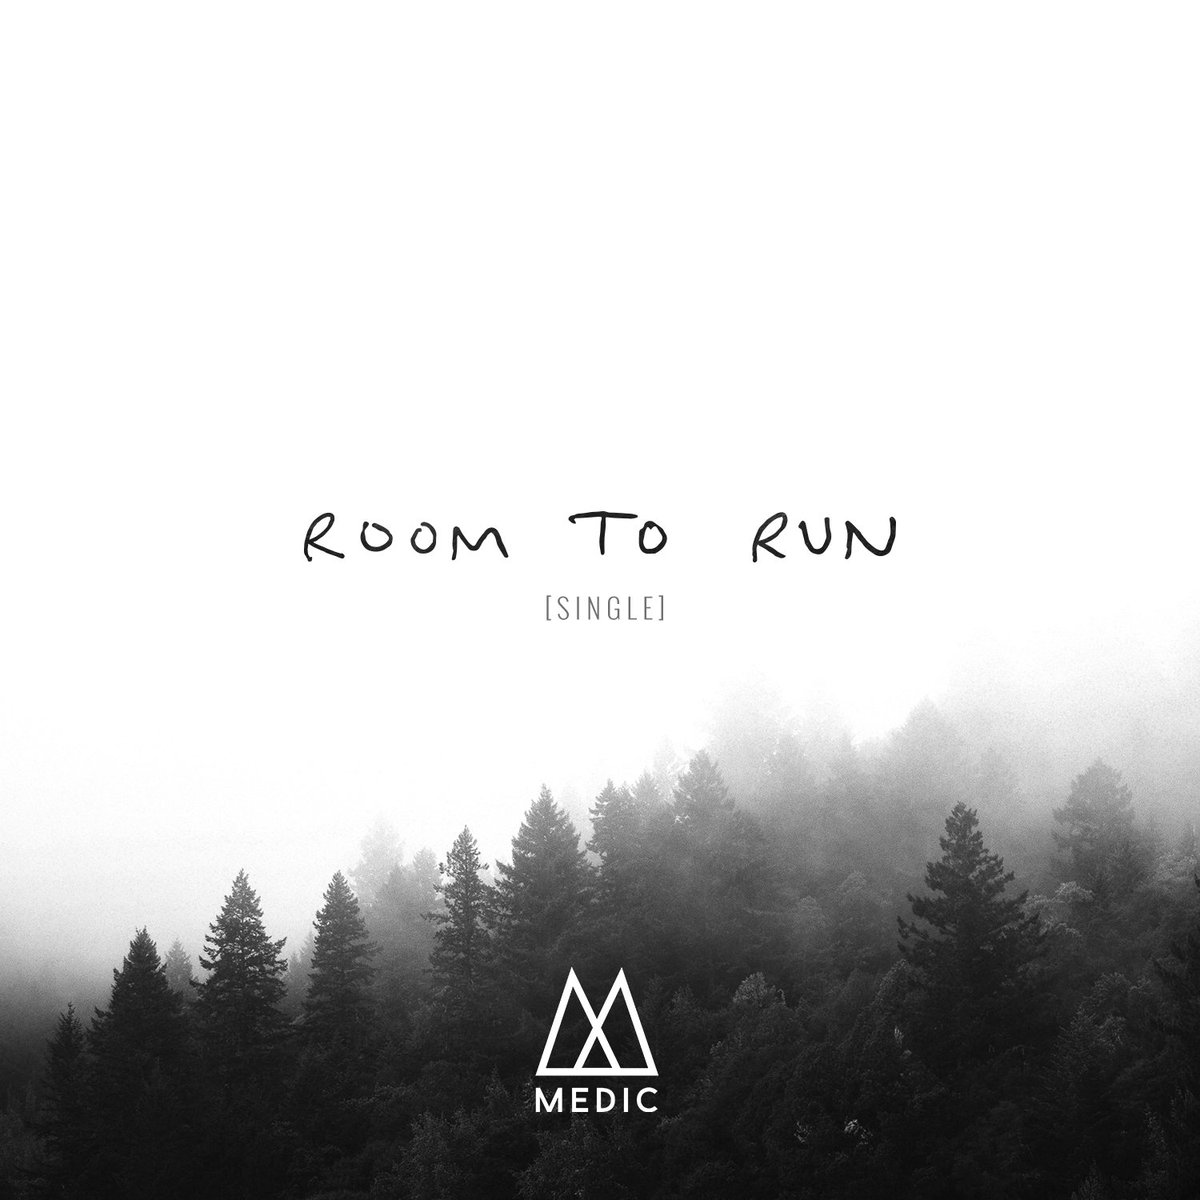 """Our new single """"Room to Run"""" is here! Listen, enjoy and spread the word! #OlympiaIsComing https://t.co/vsNF0Rvk0u https://t.co/jd8ebXQzpS"""